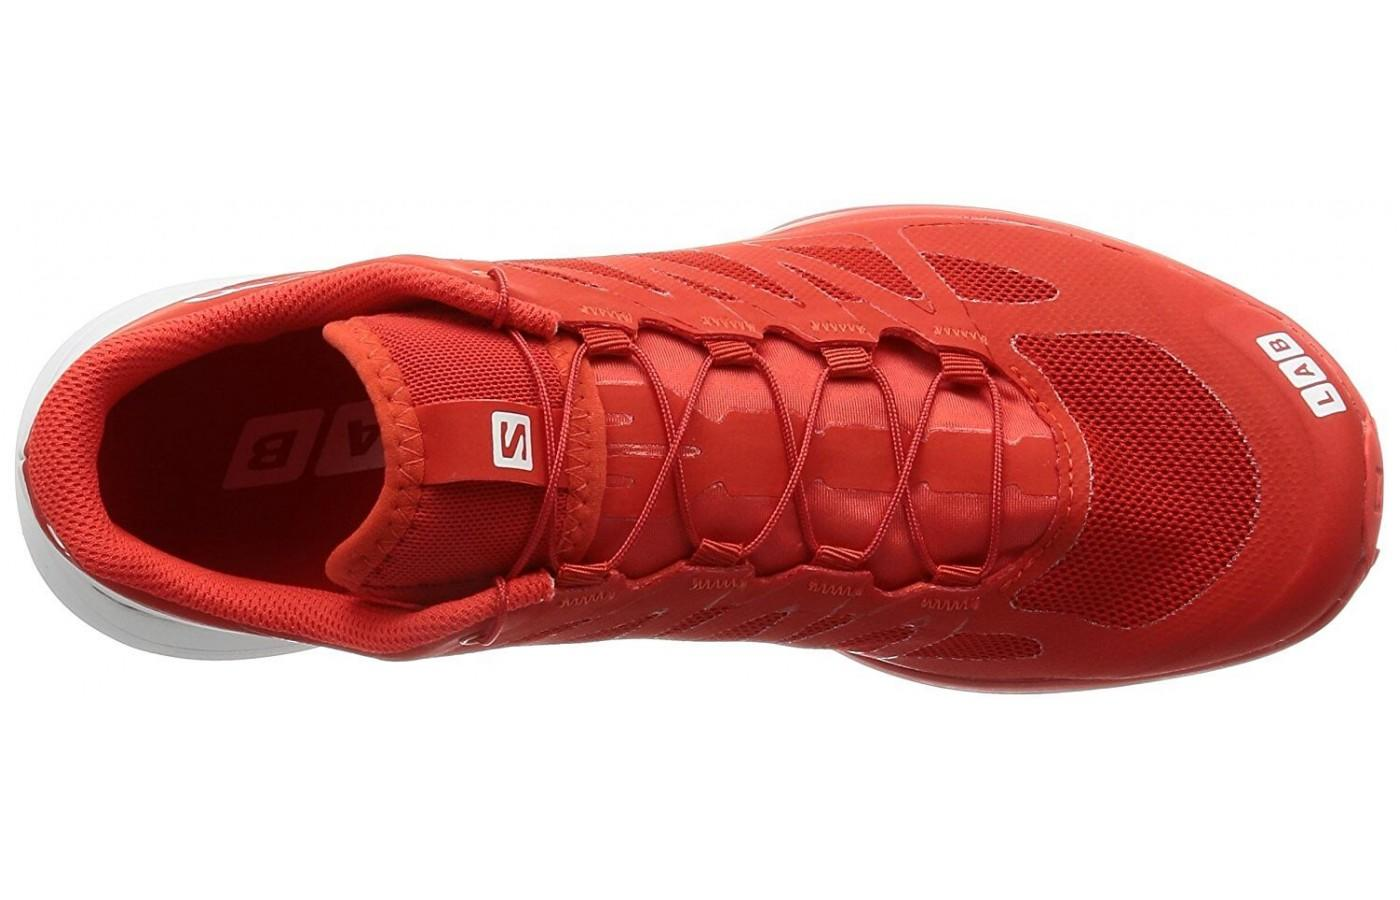 The Sense 6's upper isn't very breathable but very lightweight.